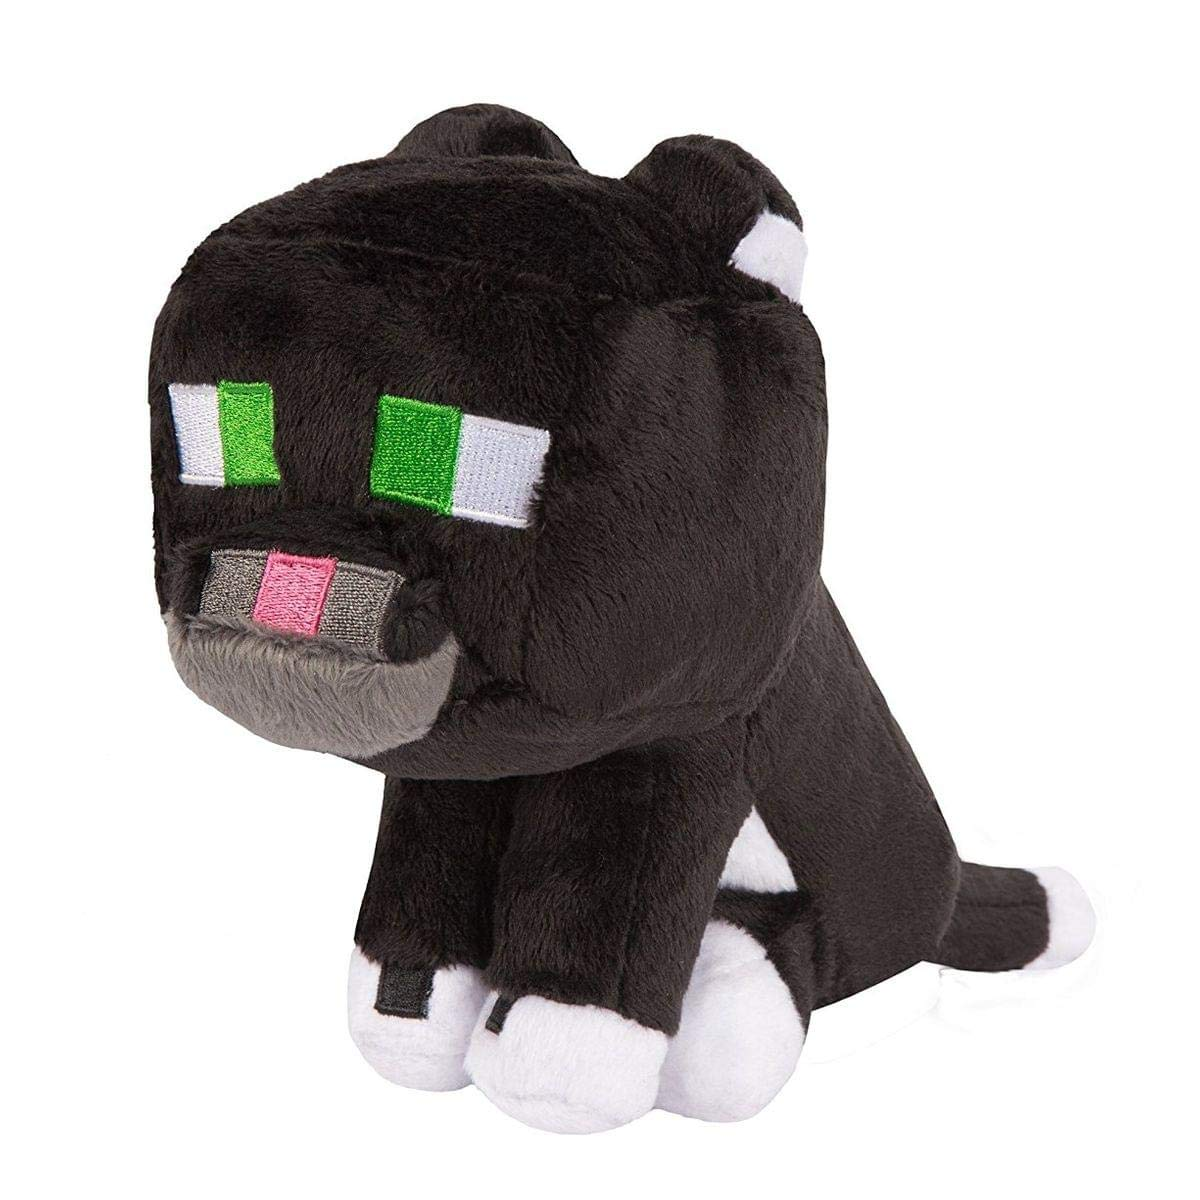 Minecraft 6363 8-Inch Tuxedo Cat Plush Toy